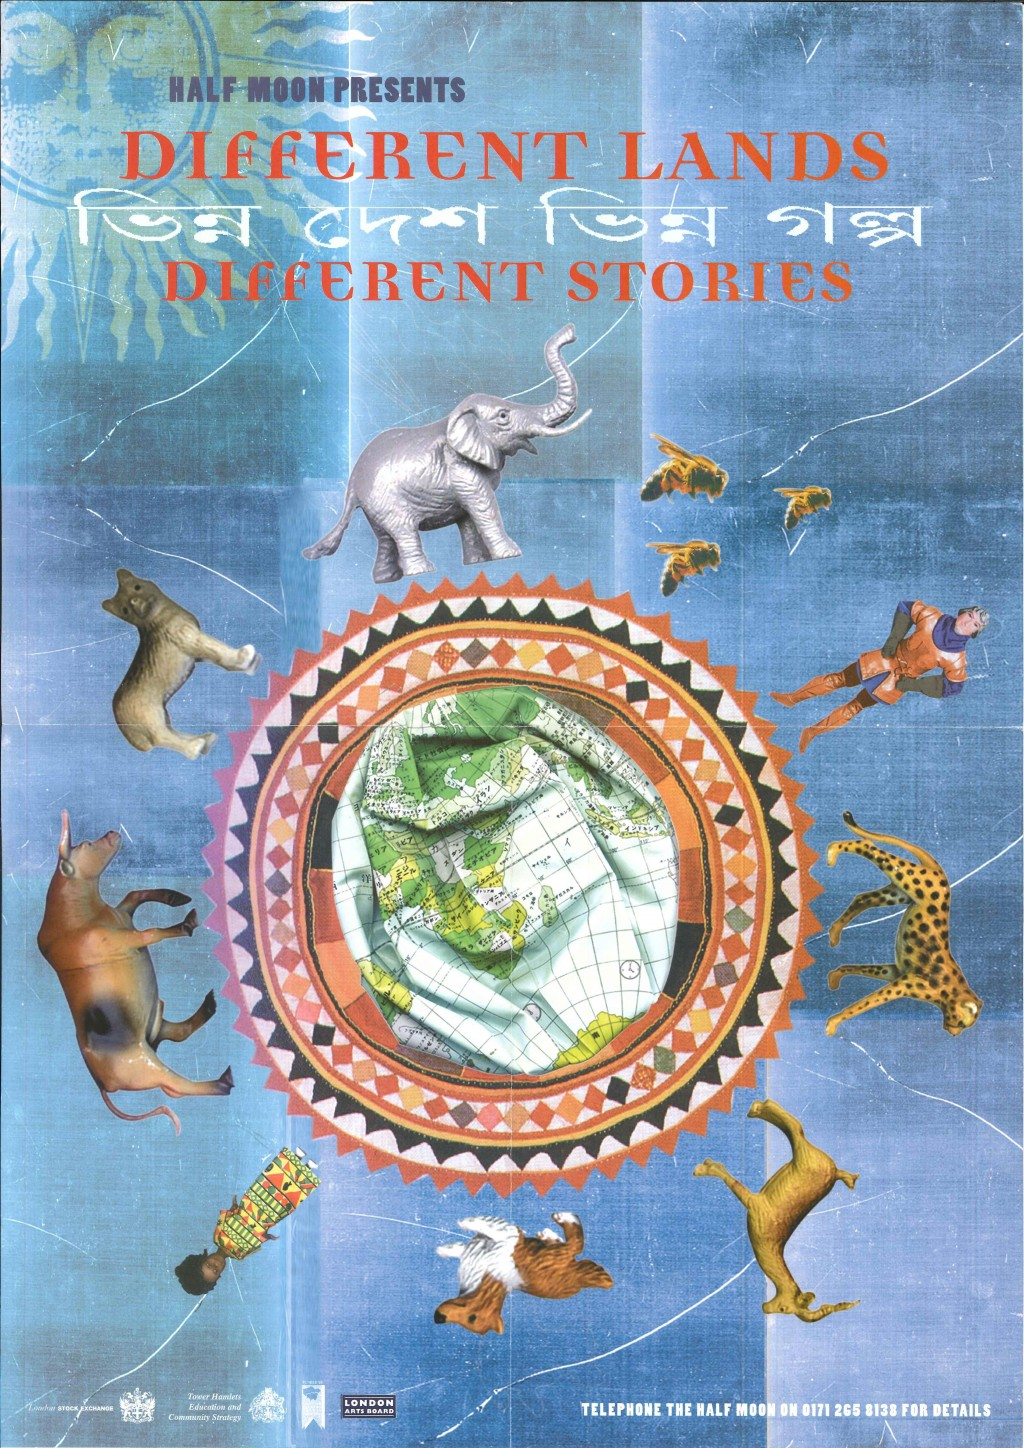 Different Lands, Different Stories Flyer Image 1